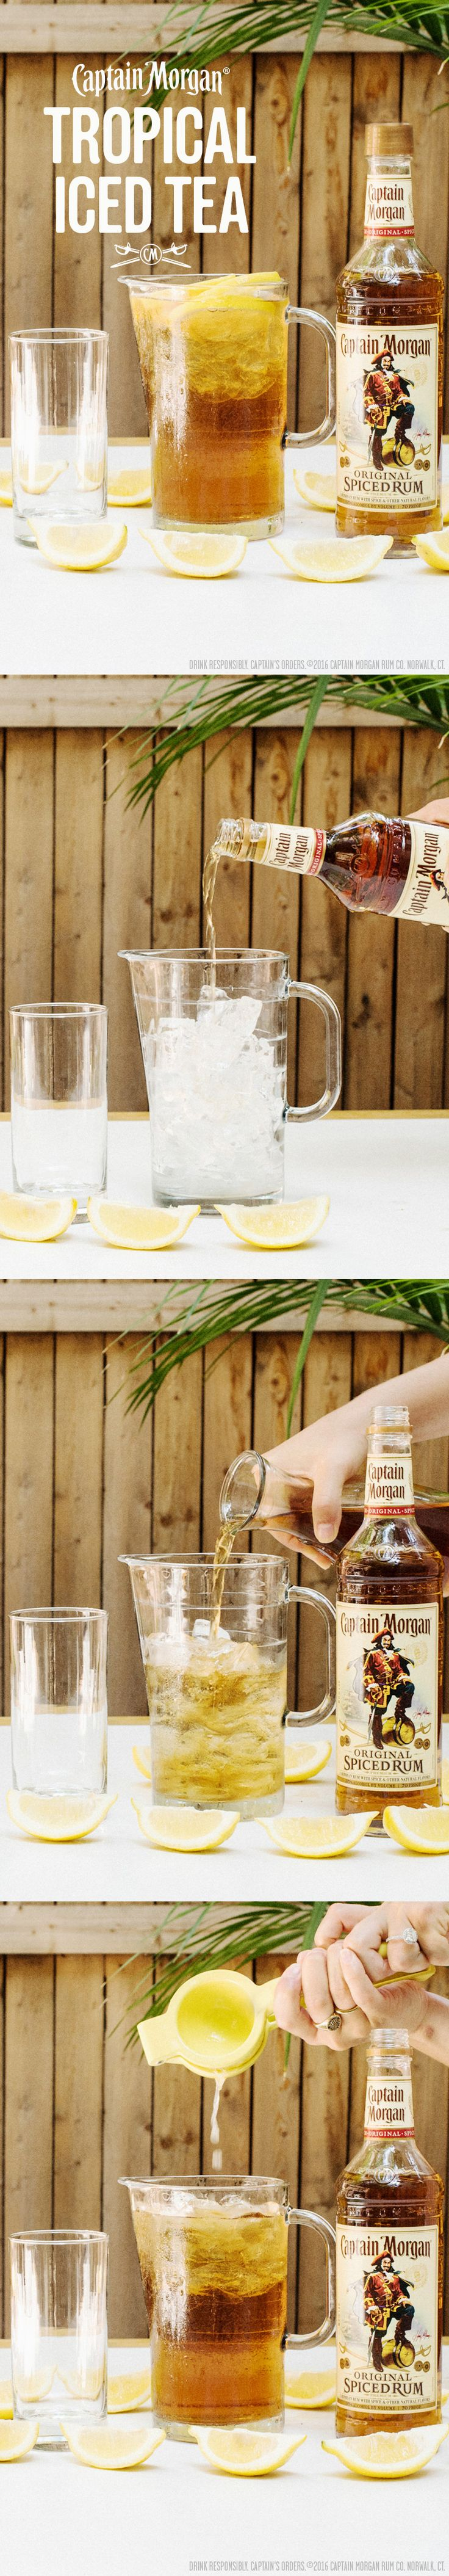 Impress your BBQ guests with this Tropical Iced Tea recipe: 1.5 oz Captain Morgan Original Spiced Rum 5 oz Ice Tea Squeeze of lemon Get more rum recipes at us.captainmorgan....